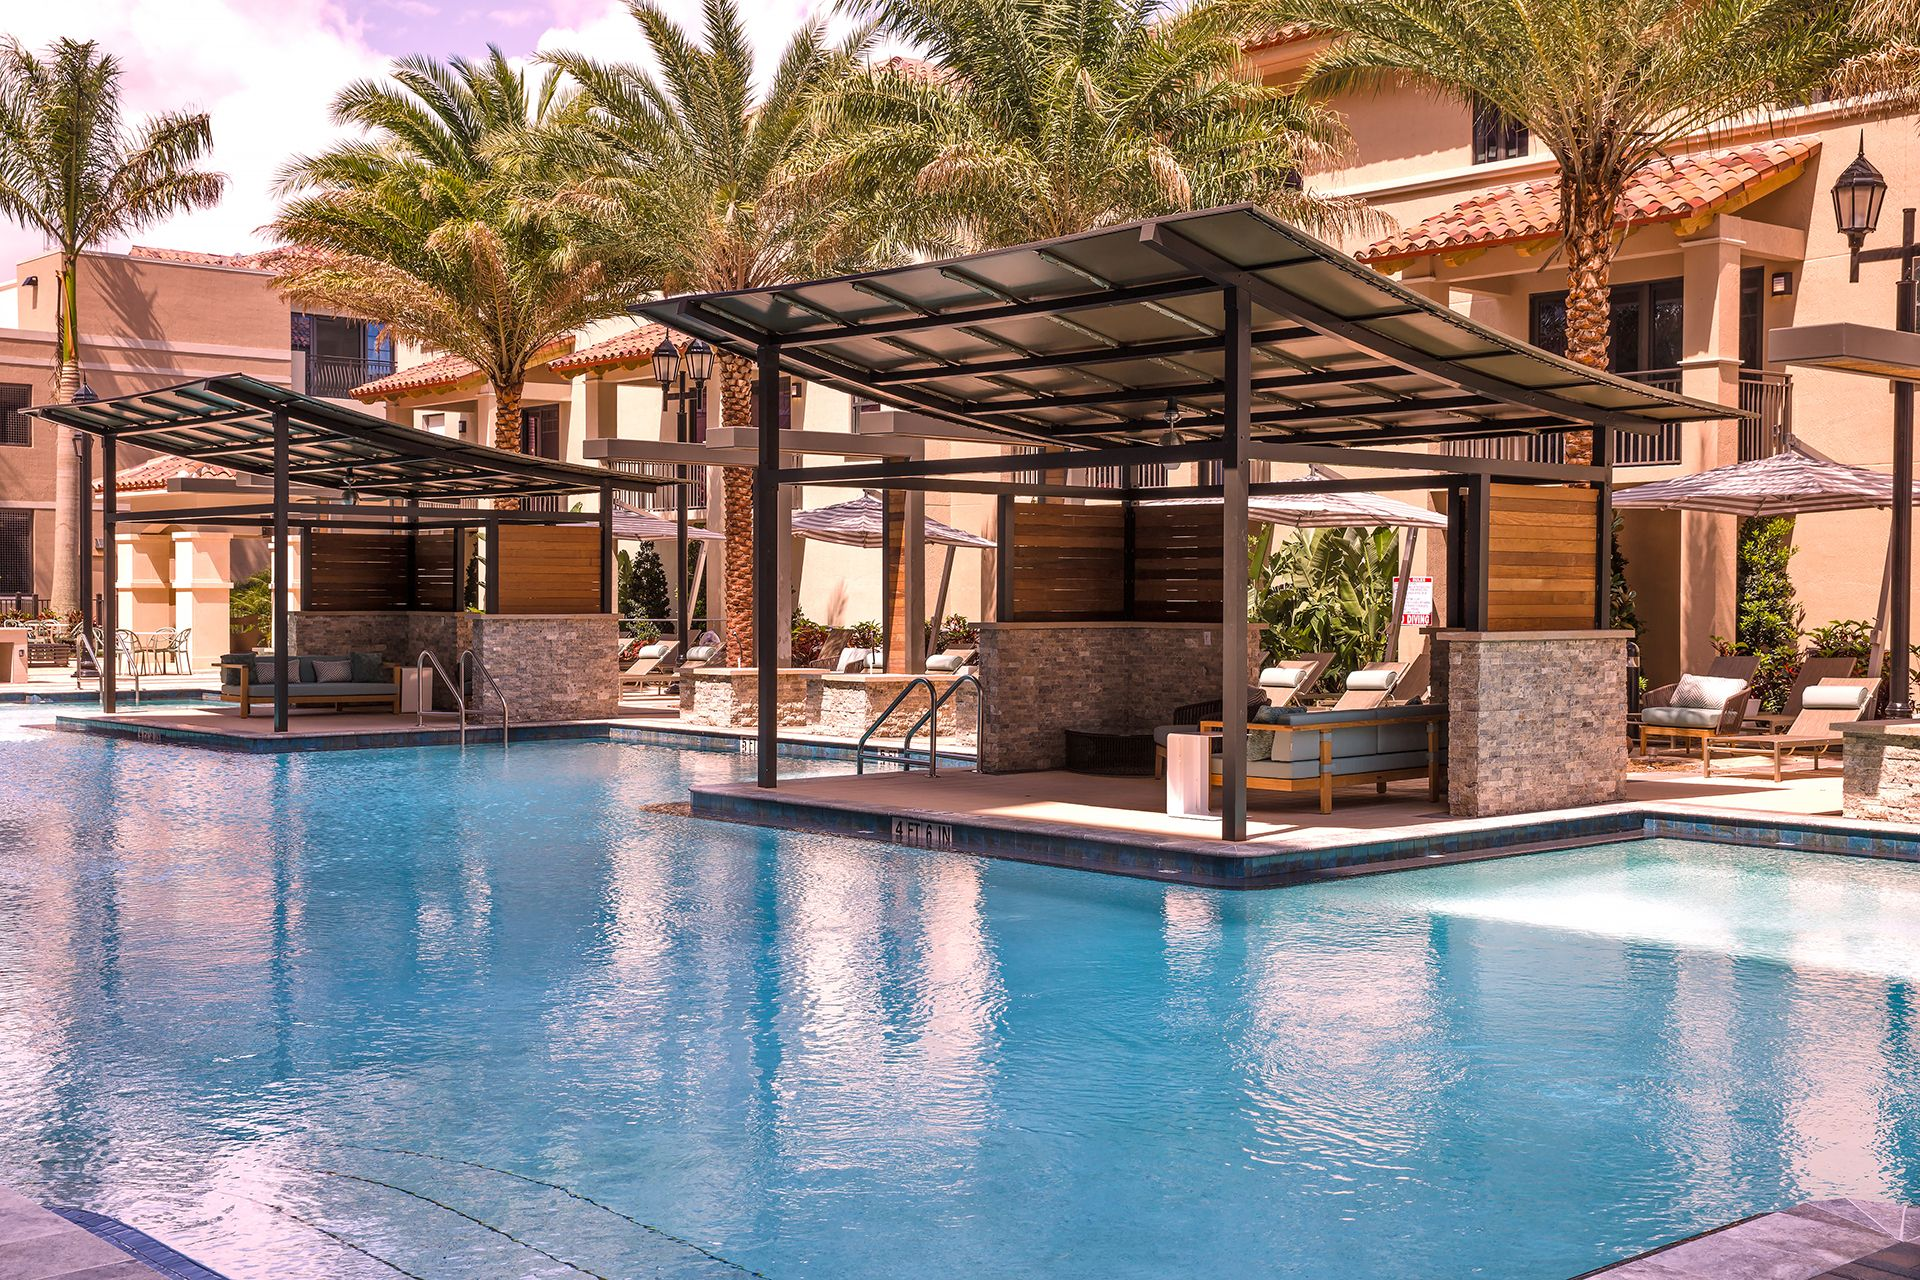 Poolside cabanas with seating